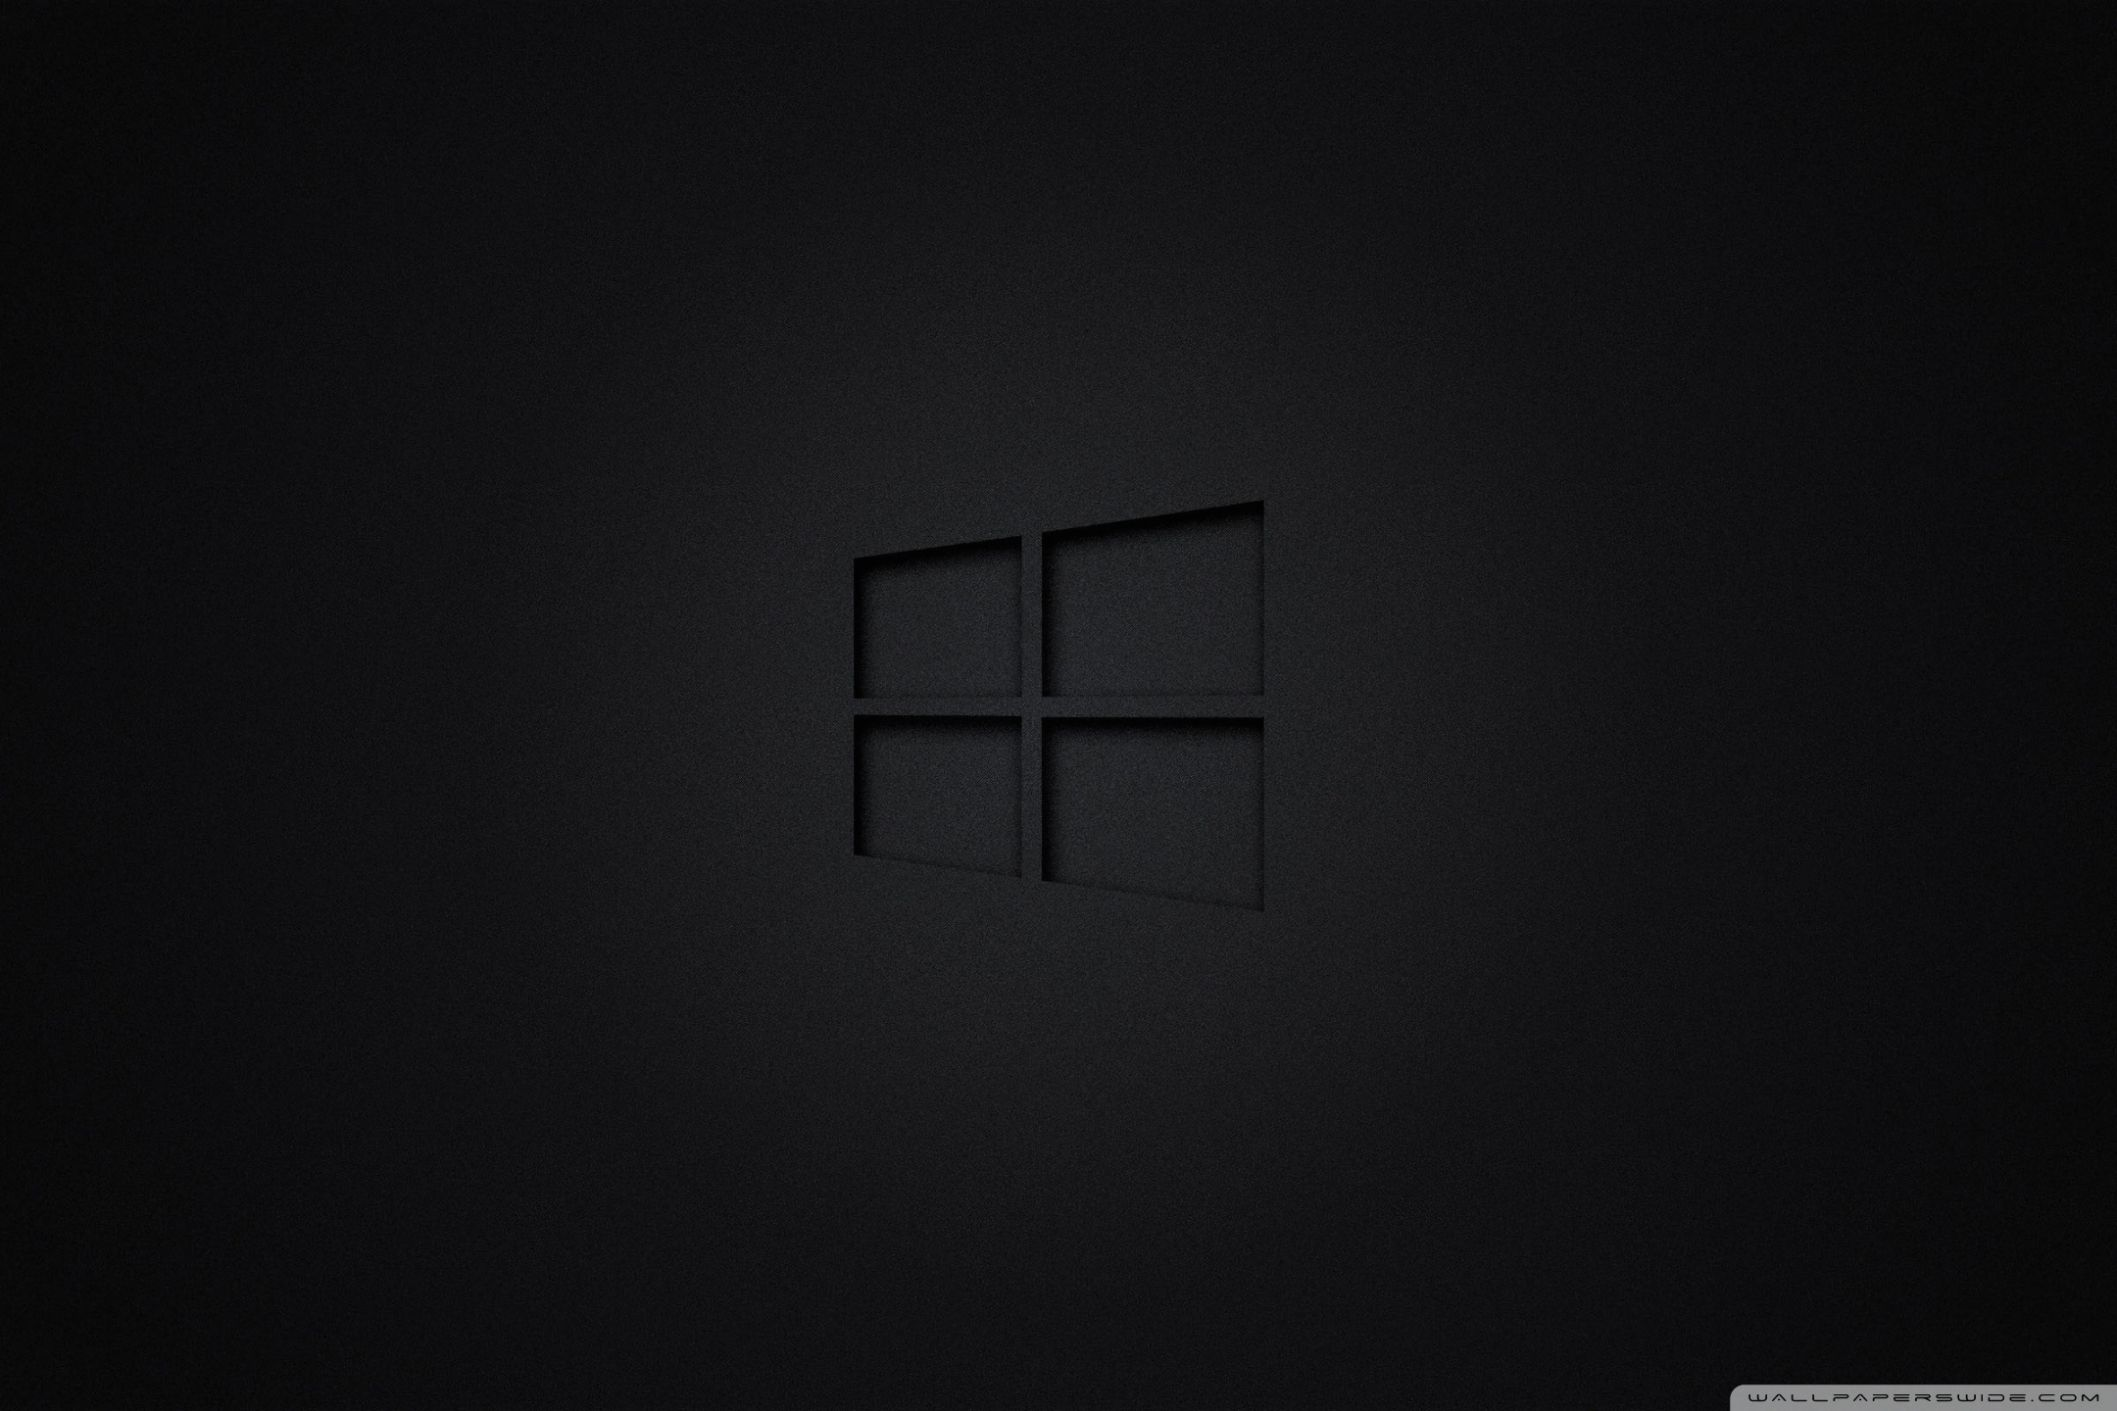 Wall Windows 10 Black 4k Hd Desktop Wallpaper For 4k Ultra Hd Tv Black Wallpaper Desktop Wallpaper Black Dark Wood Wallpaper